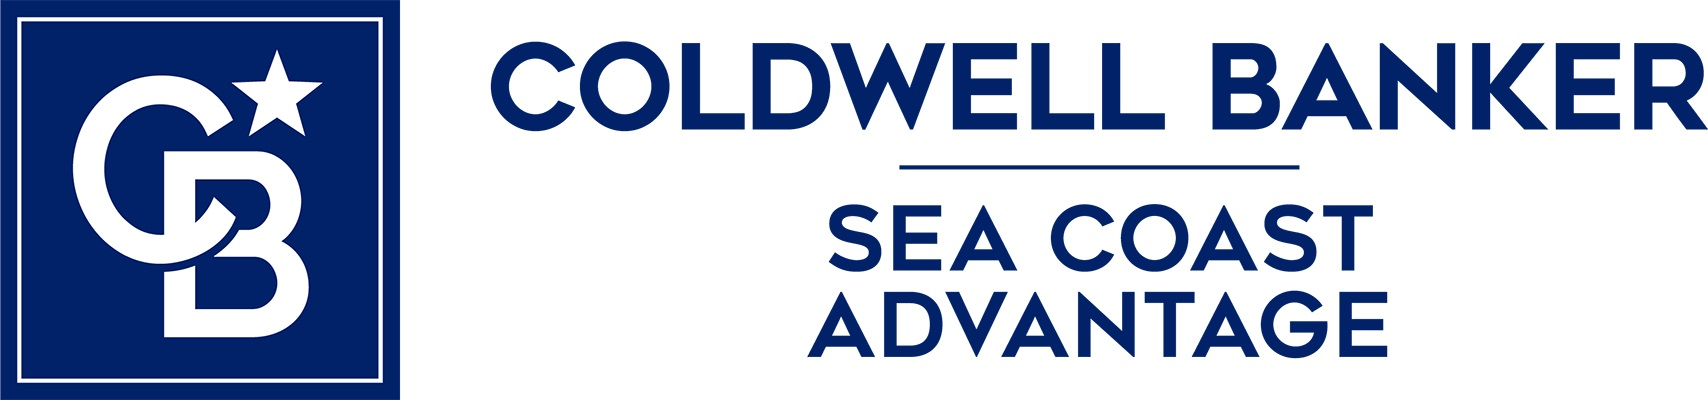 Andrea Carter - Coldwell Banker Sea Coast Advantage Realty